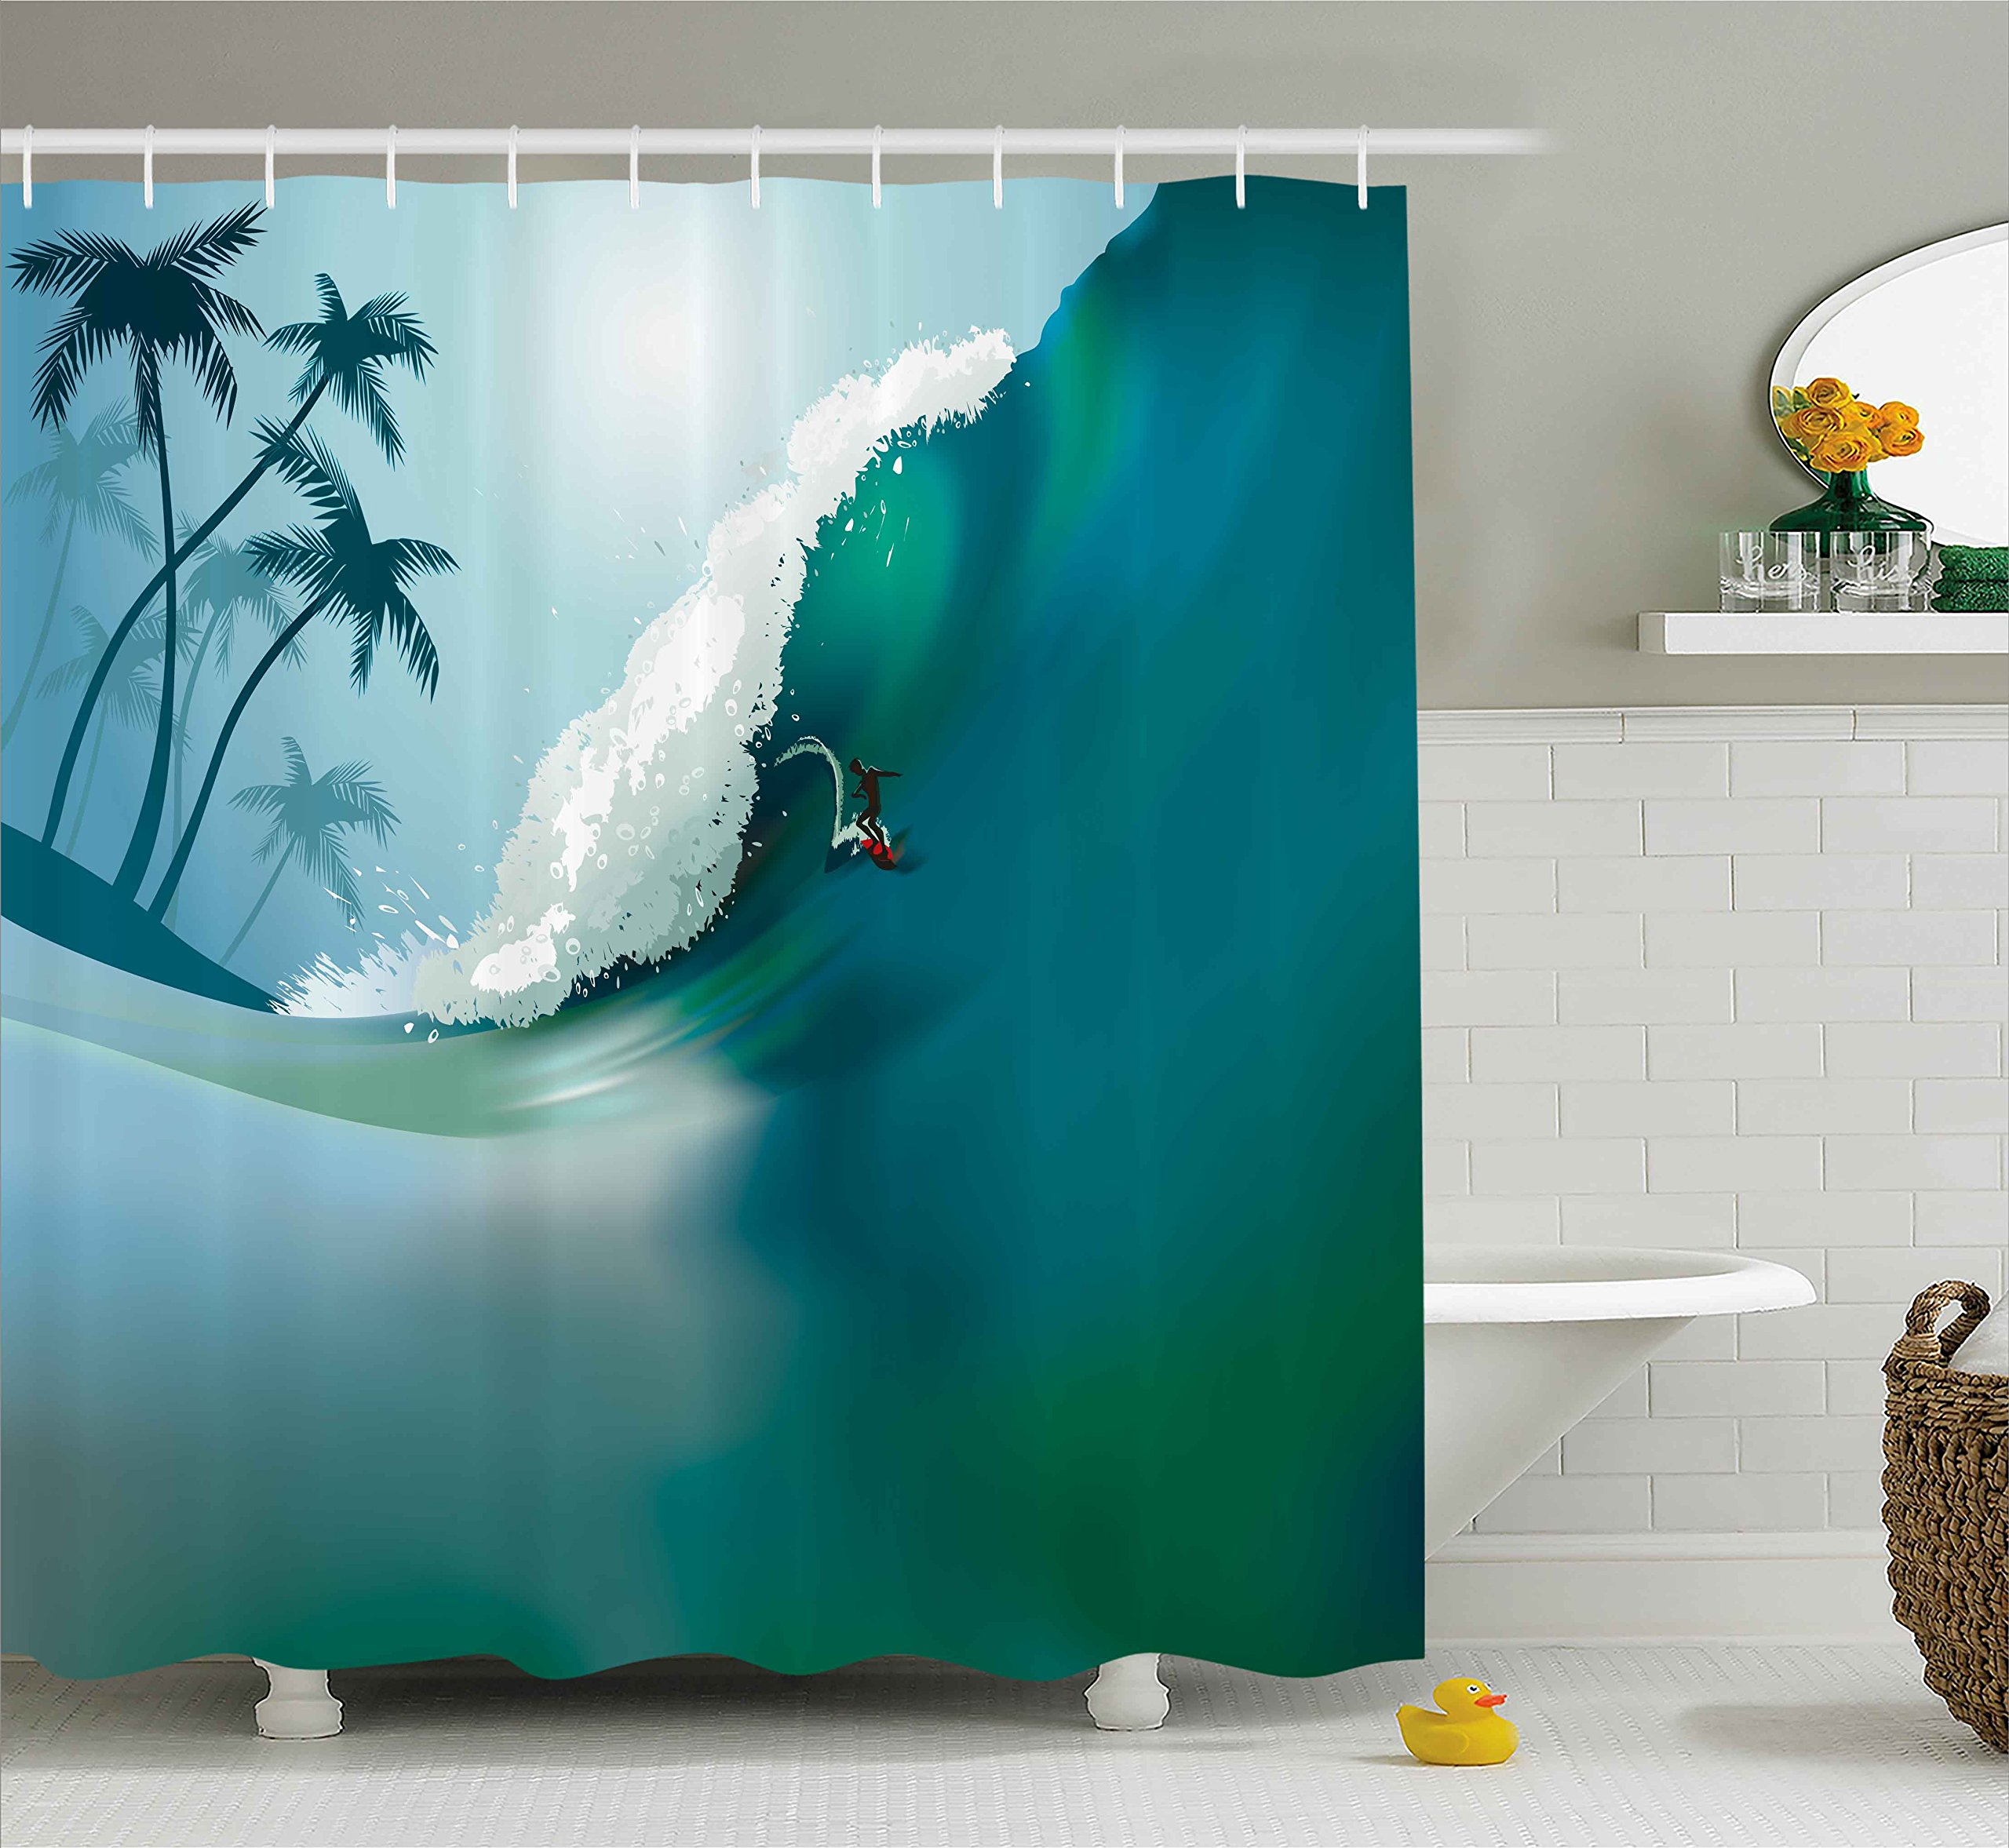 Ambesonne Sports Shower Curtain by, Surfing man on Big Ocean Wave Exotic Hobby Activity Leisure Sea Palm Trees Artful Graphic, Fabric Bathroom Decor Set with Hooks, 84 Inches Extra Long, Teal